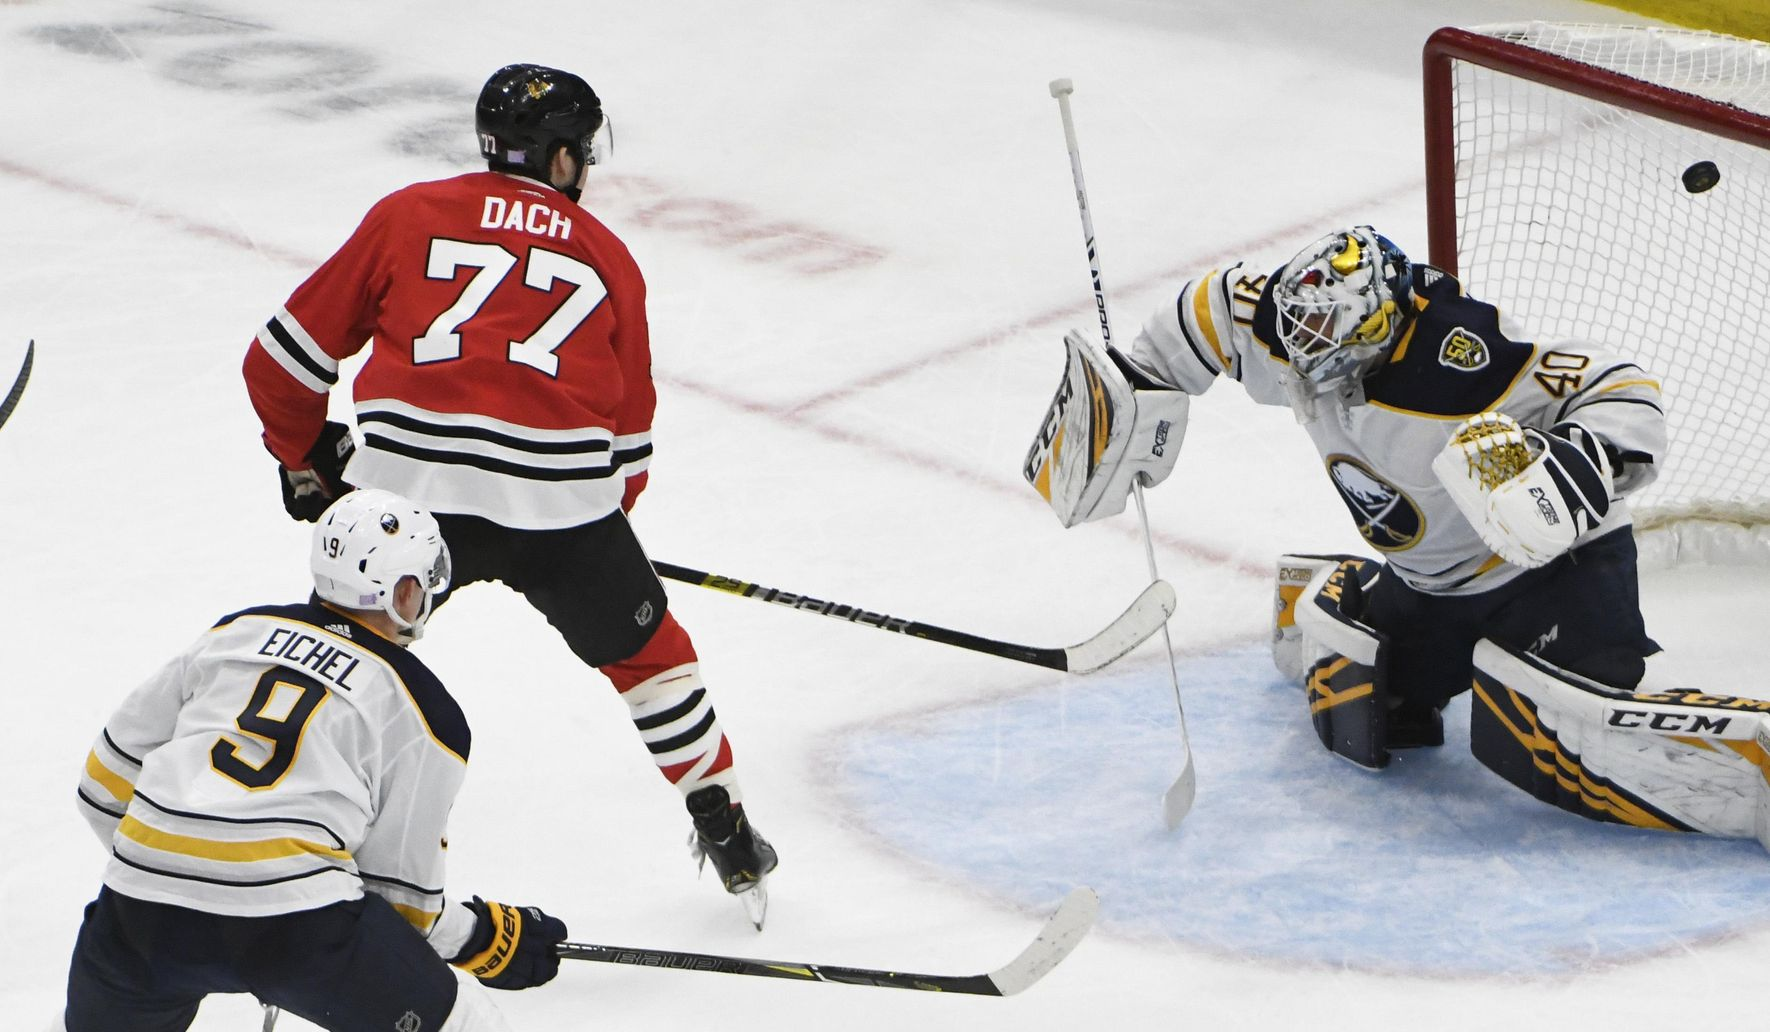 Sabres_blackhawks_hockey_45135_c0-157-3765-2352_s1770x1032